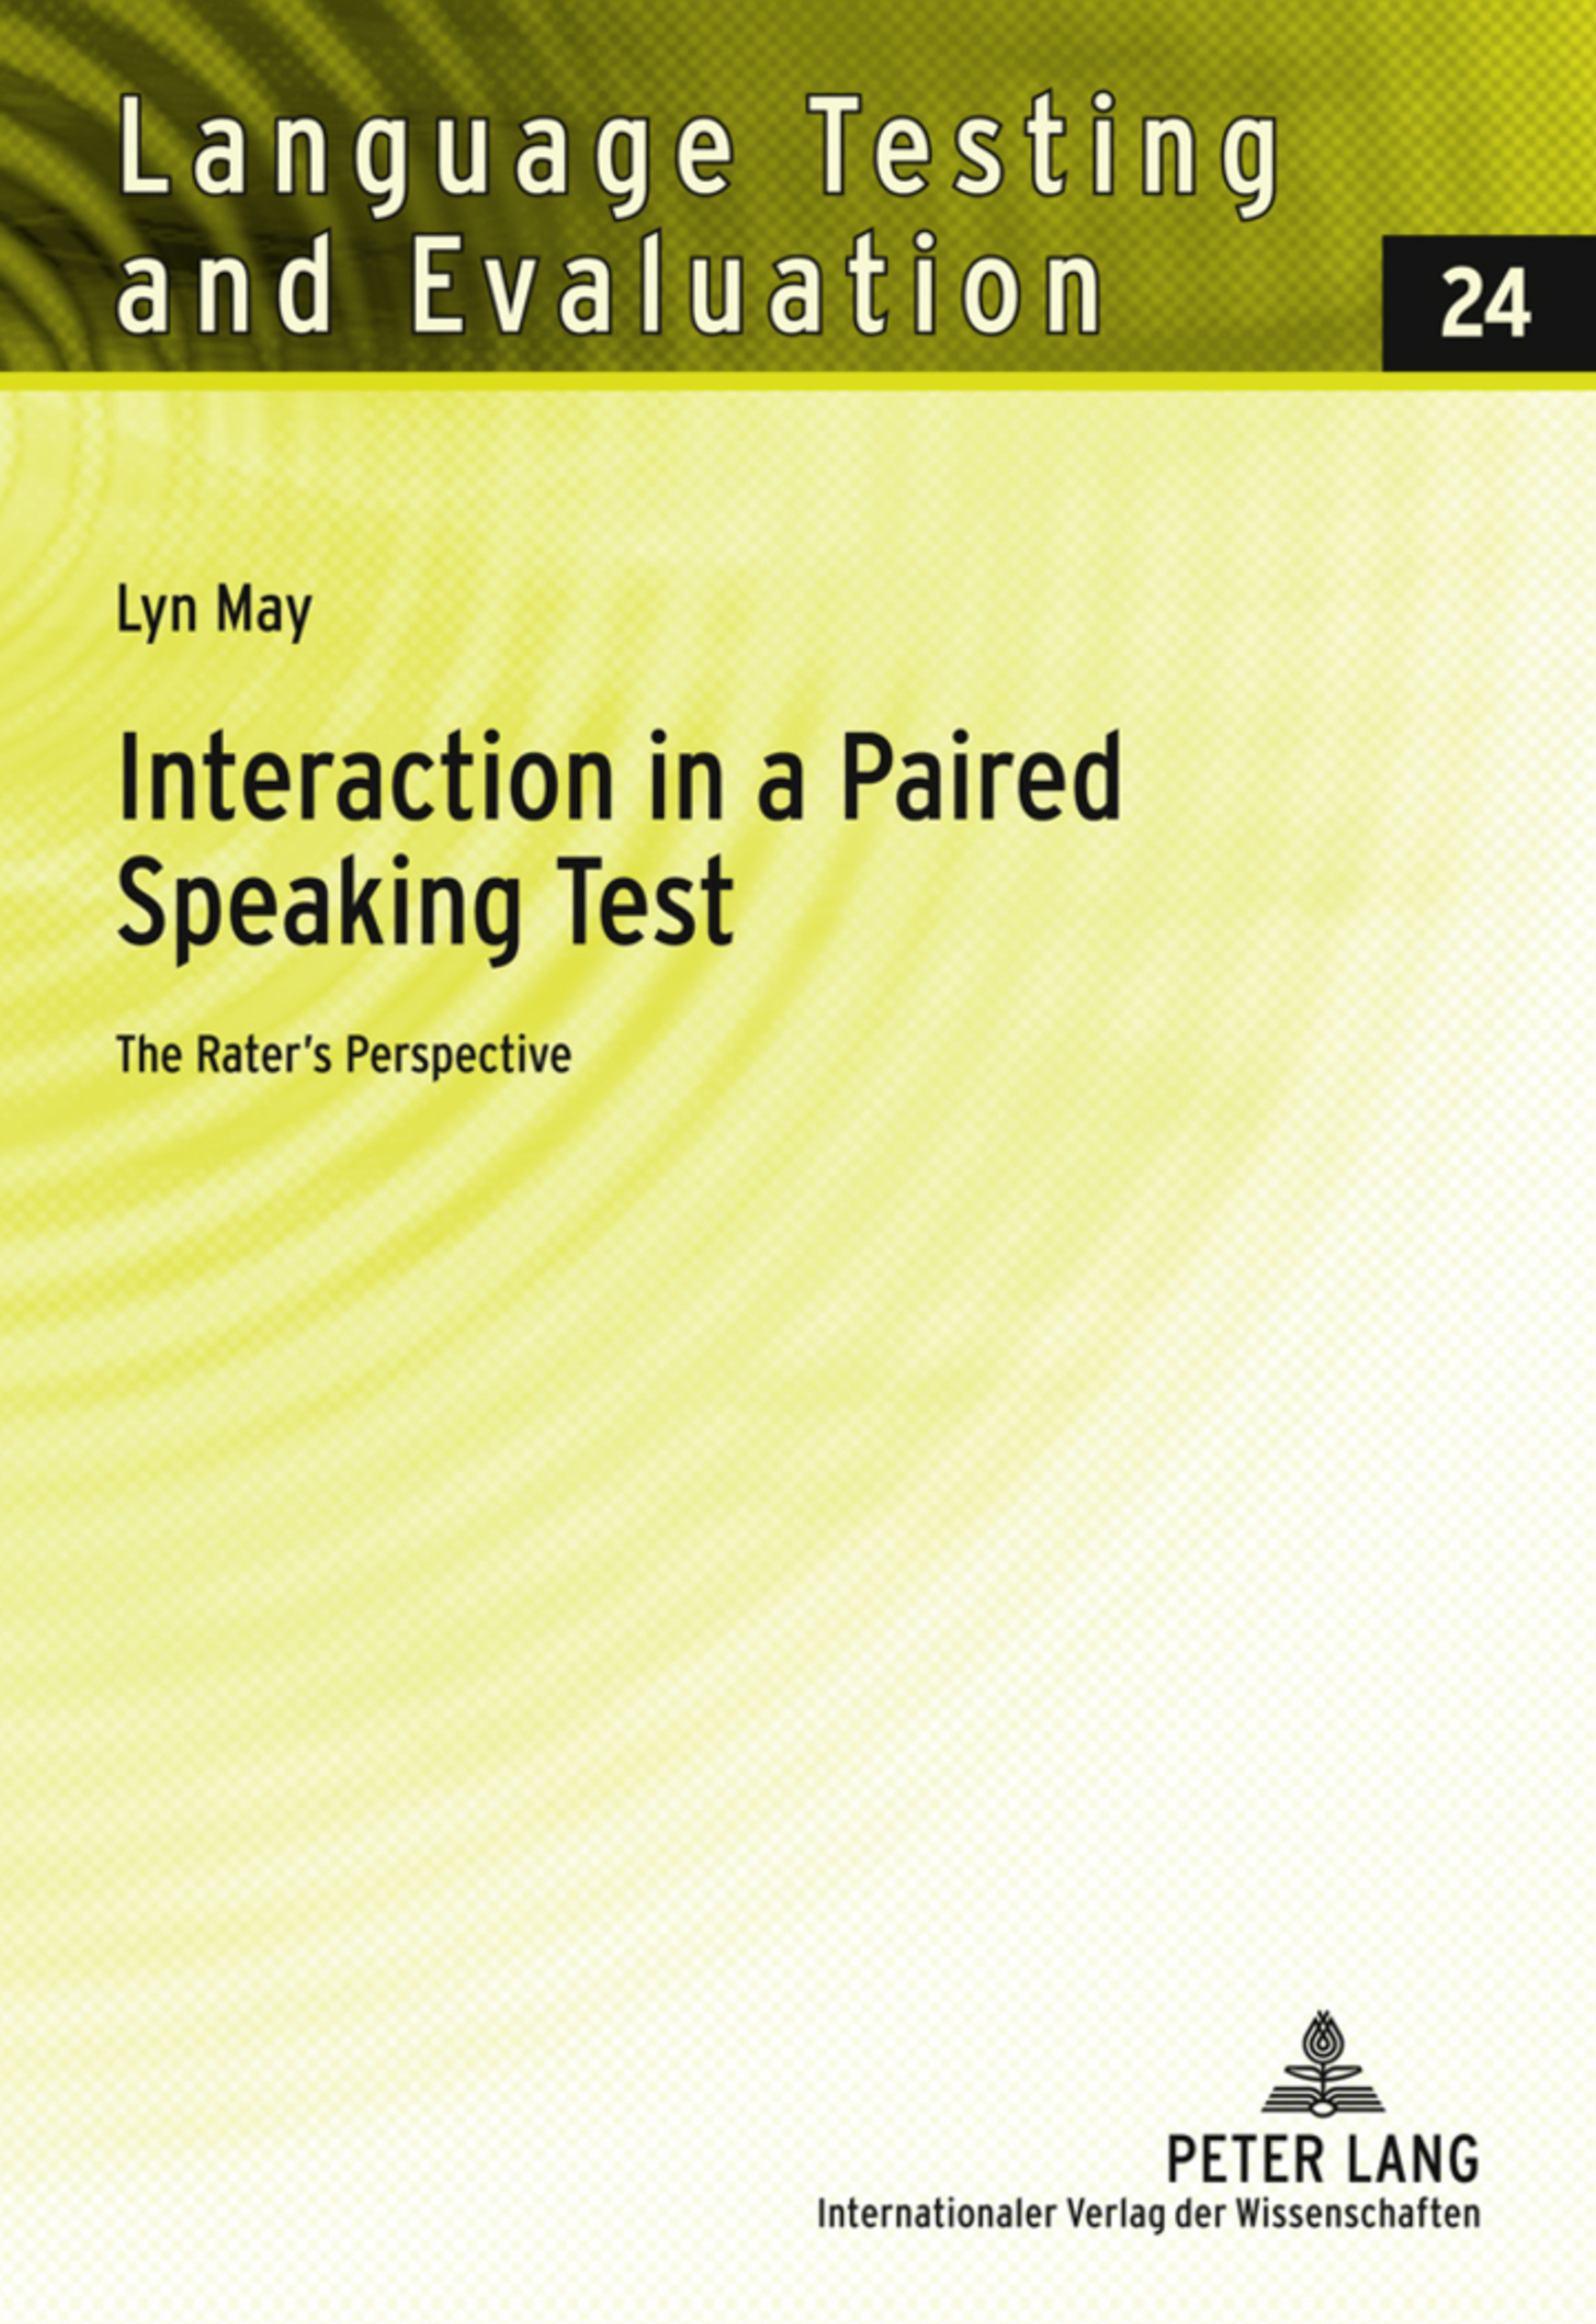 Title: Interaction in a Paired Speaking Test